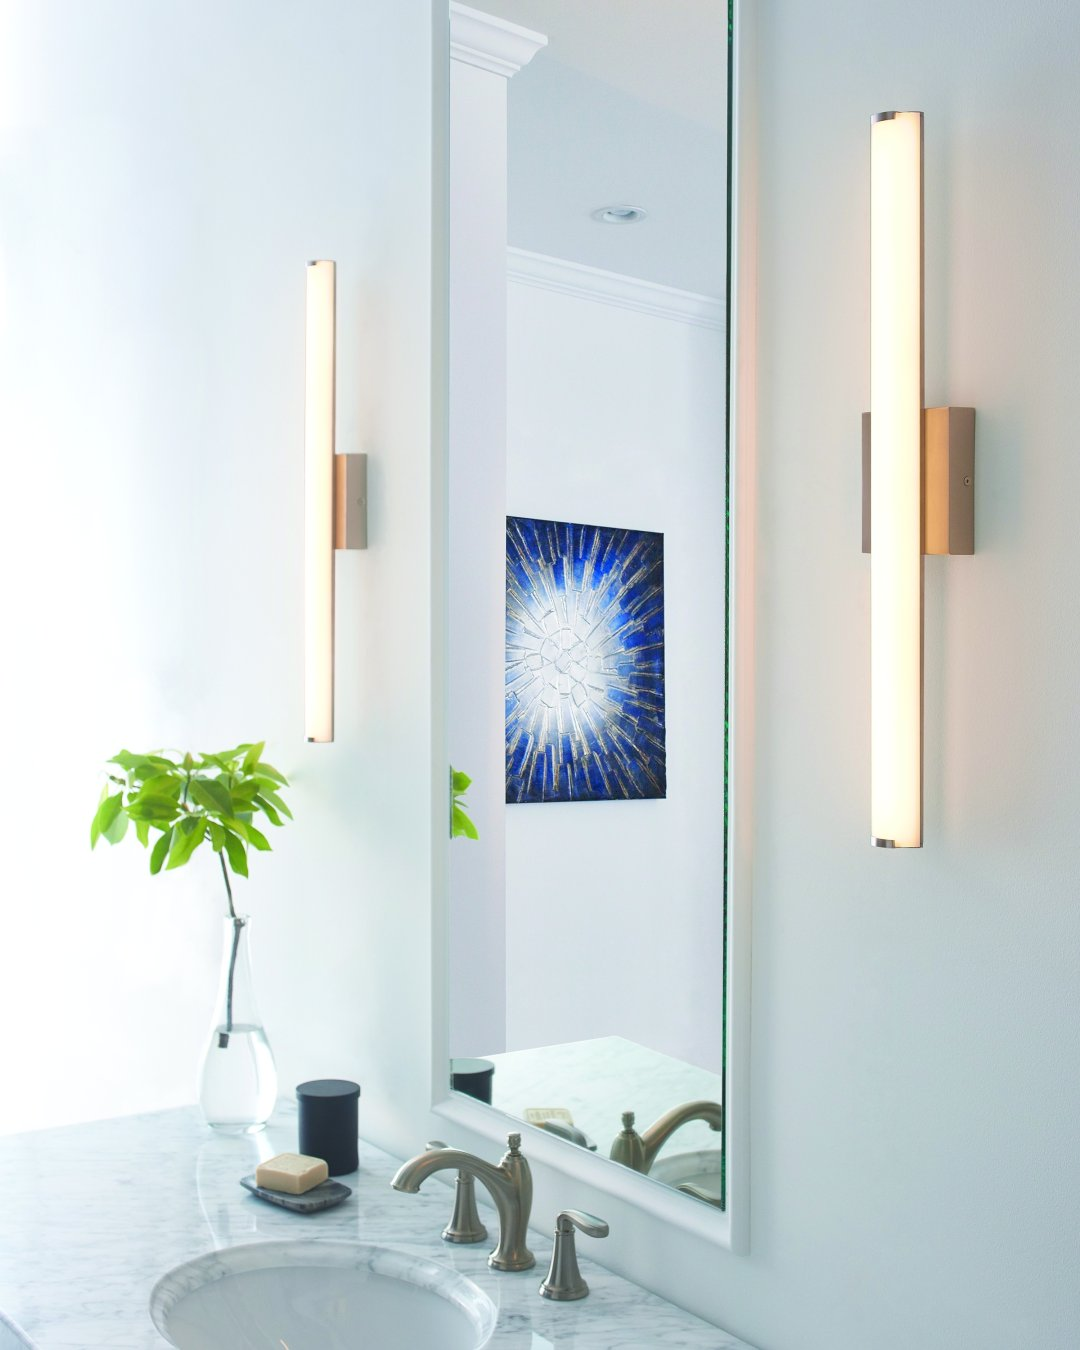 Bathroom Lighting Ideas Tips For Better Bath Lighting At Lumenscom - Best sconces for bathroom